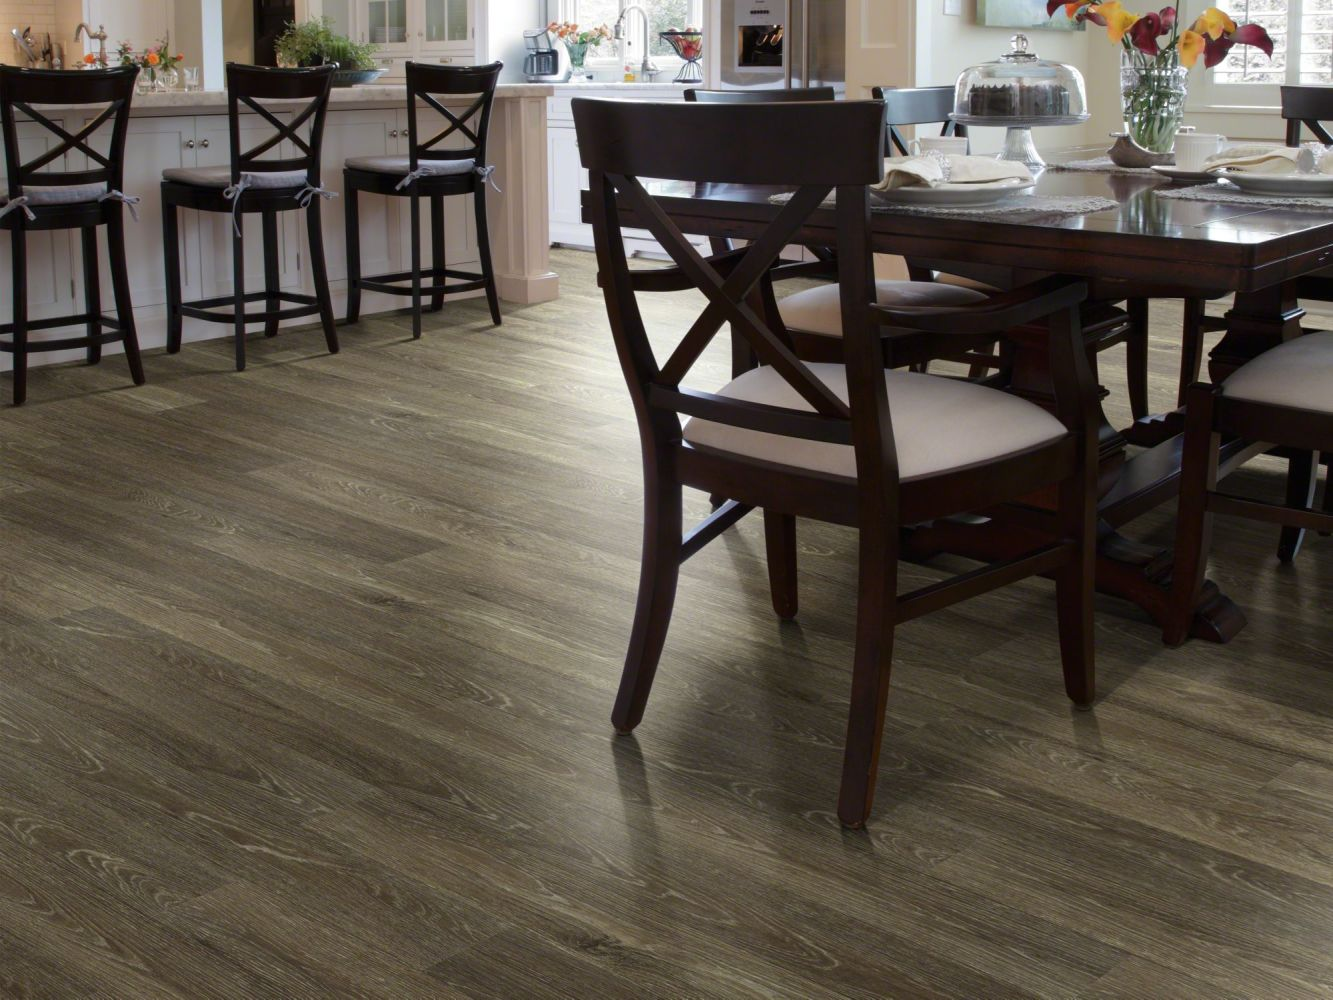 Shaw Floors Resilient Property Solutions Downtown USA 20 Lakeshore Dr 00774_VE222